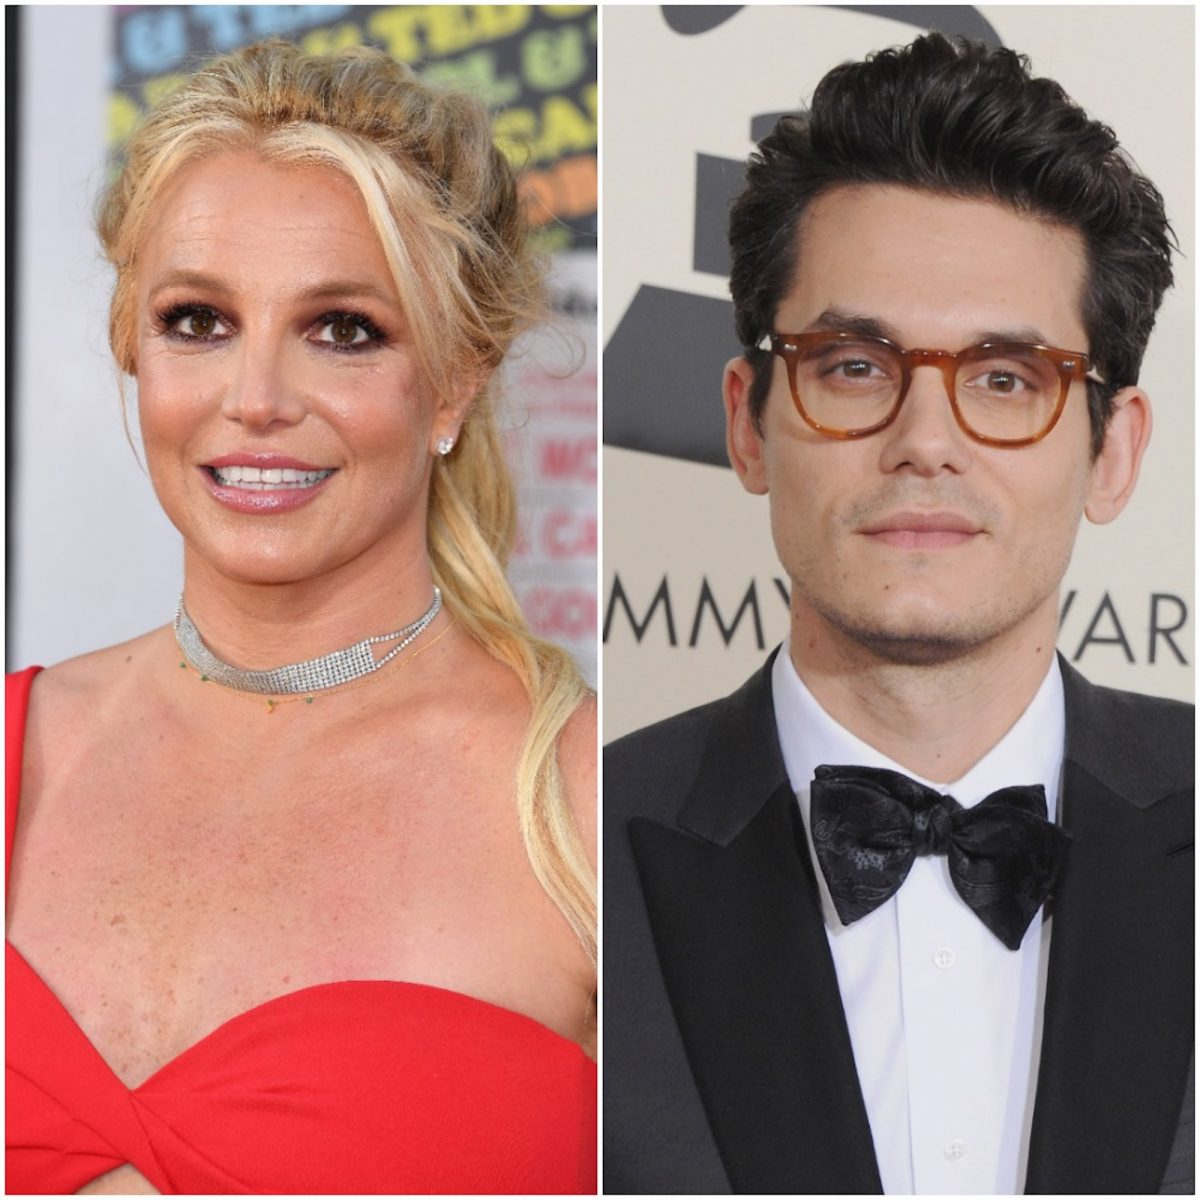 Britney Spears and John Mayer